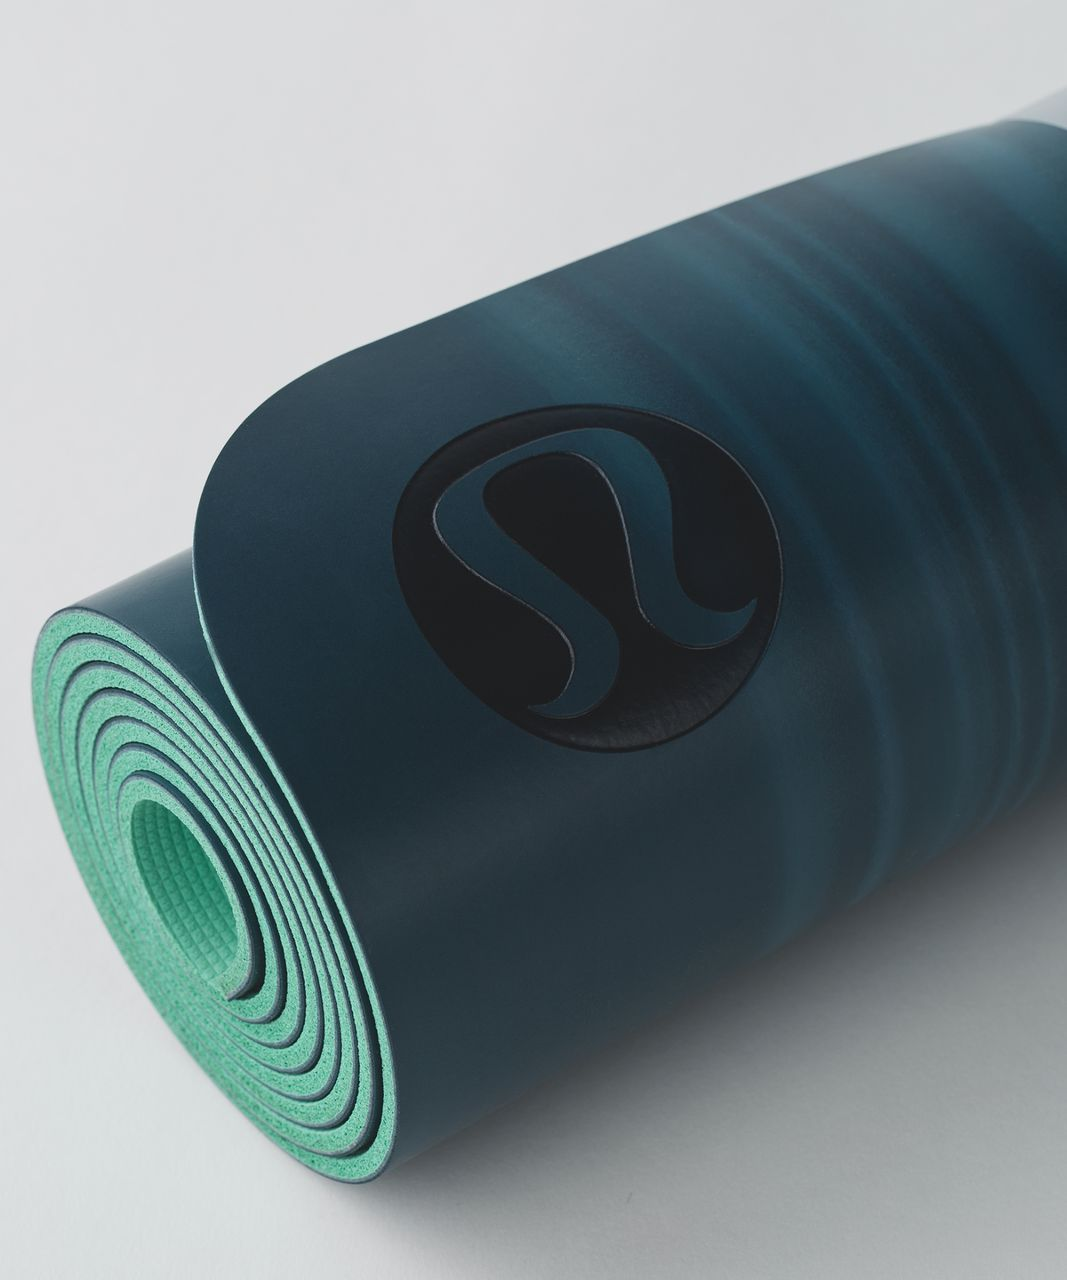 Lululemon The Reversible Mat 5mm - Alberta Lake / White / Menthol